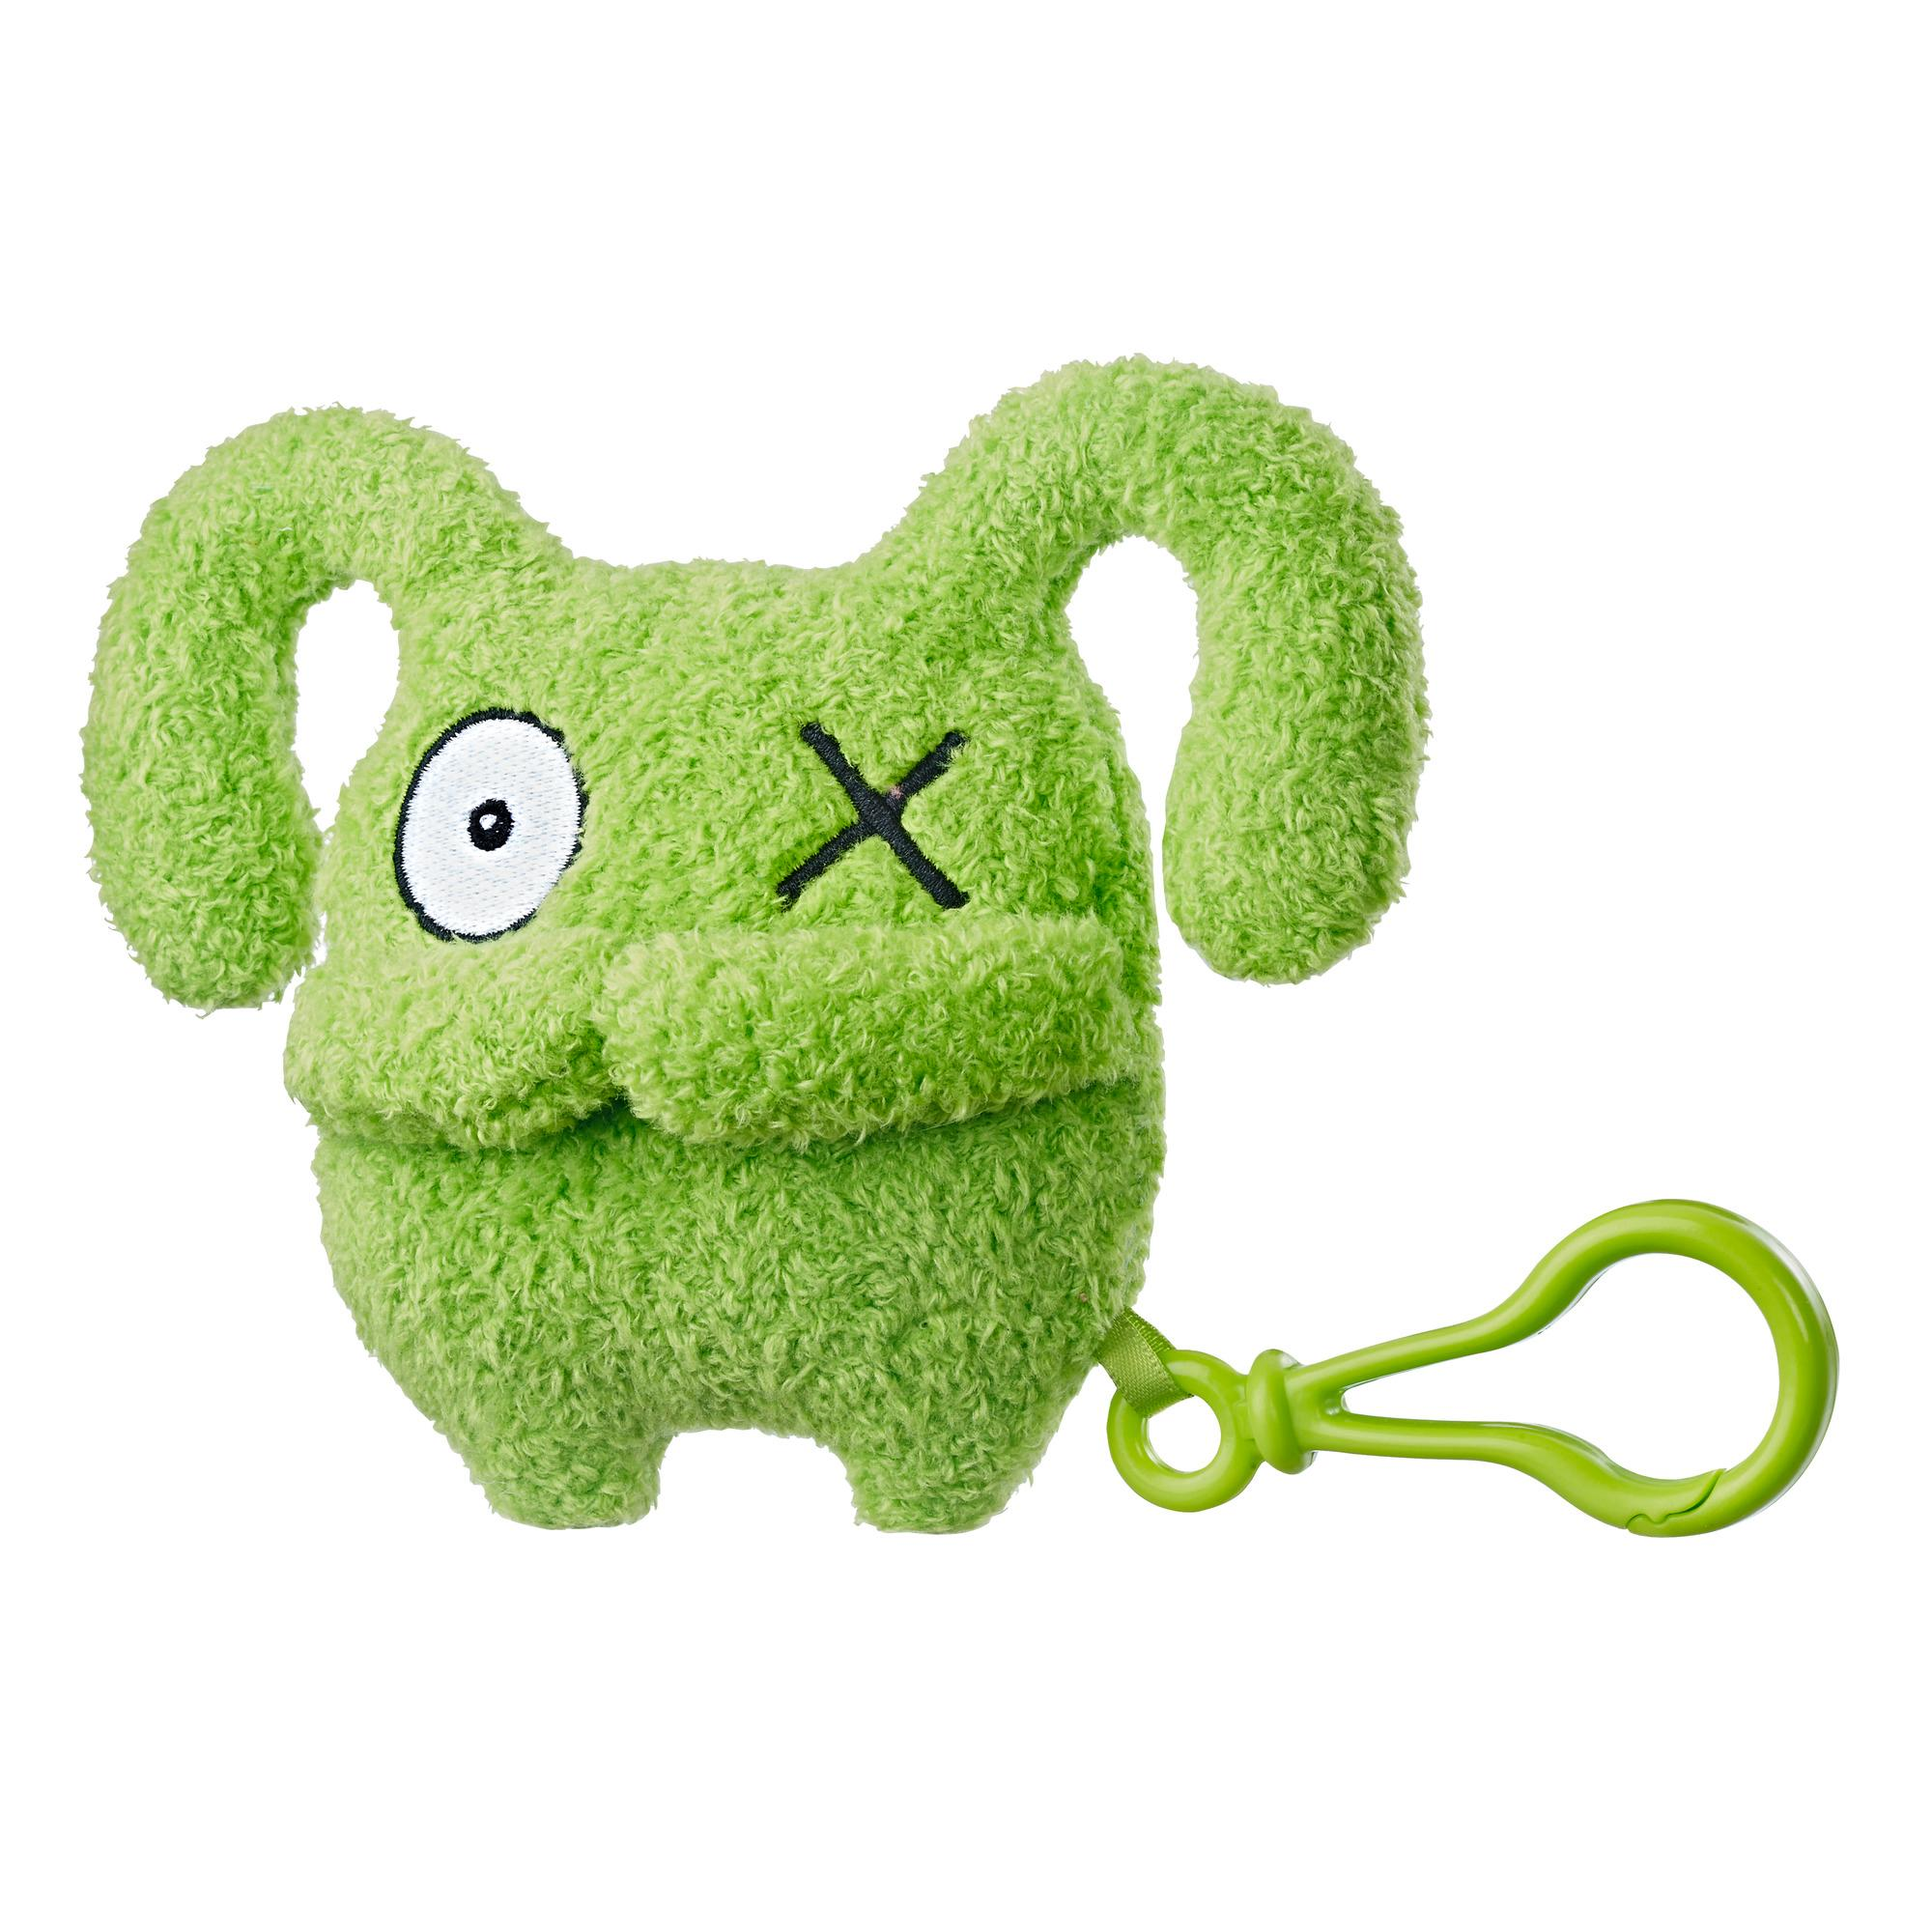 UglyDolls OX To-Go Stuffed Plush Toy, 5 inches tall